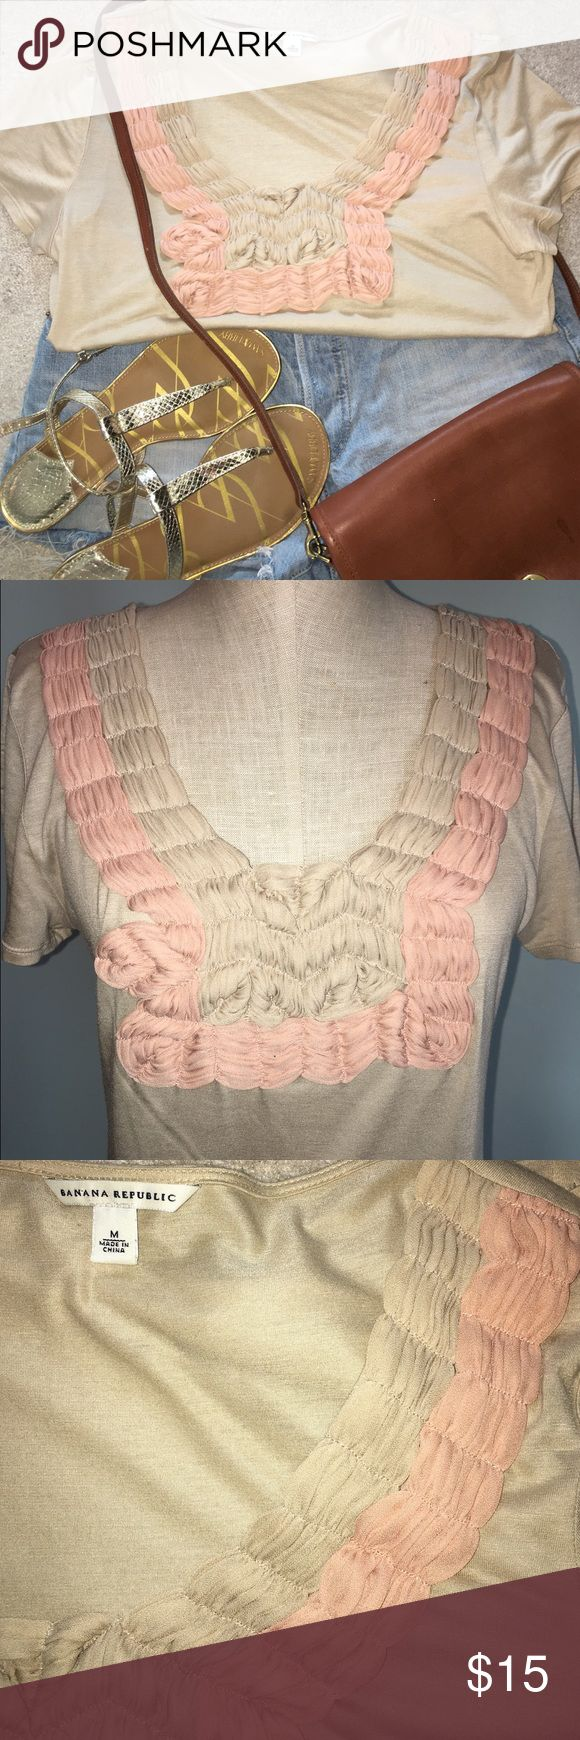 Banana Republic tan t-shirt with pink design Banana Republic t-shirt with gorgeous tan & pink decor on front. Love this shirt, but it's just sitting in my closet. Super cute for the spring/summer. Size M Banana Republic Tops Tees - Short Sleeve